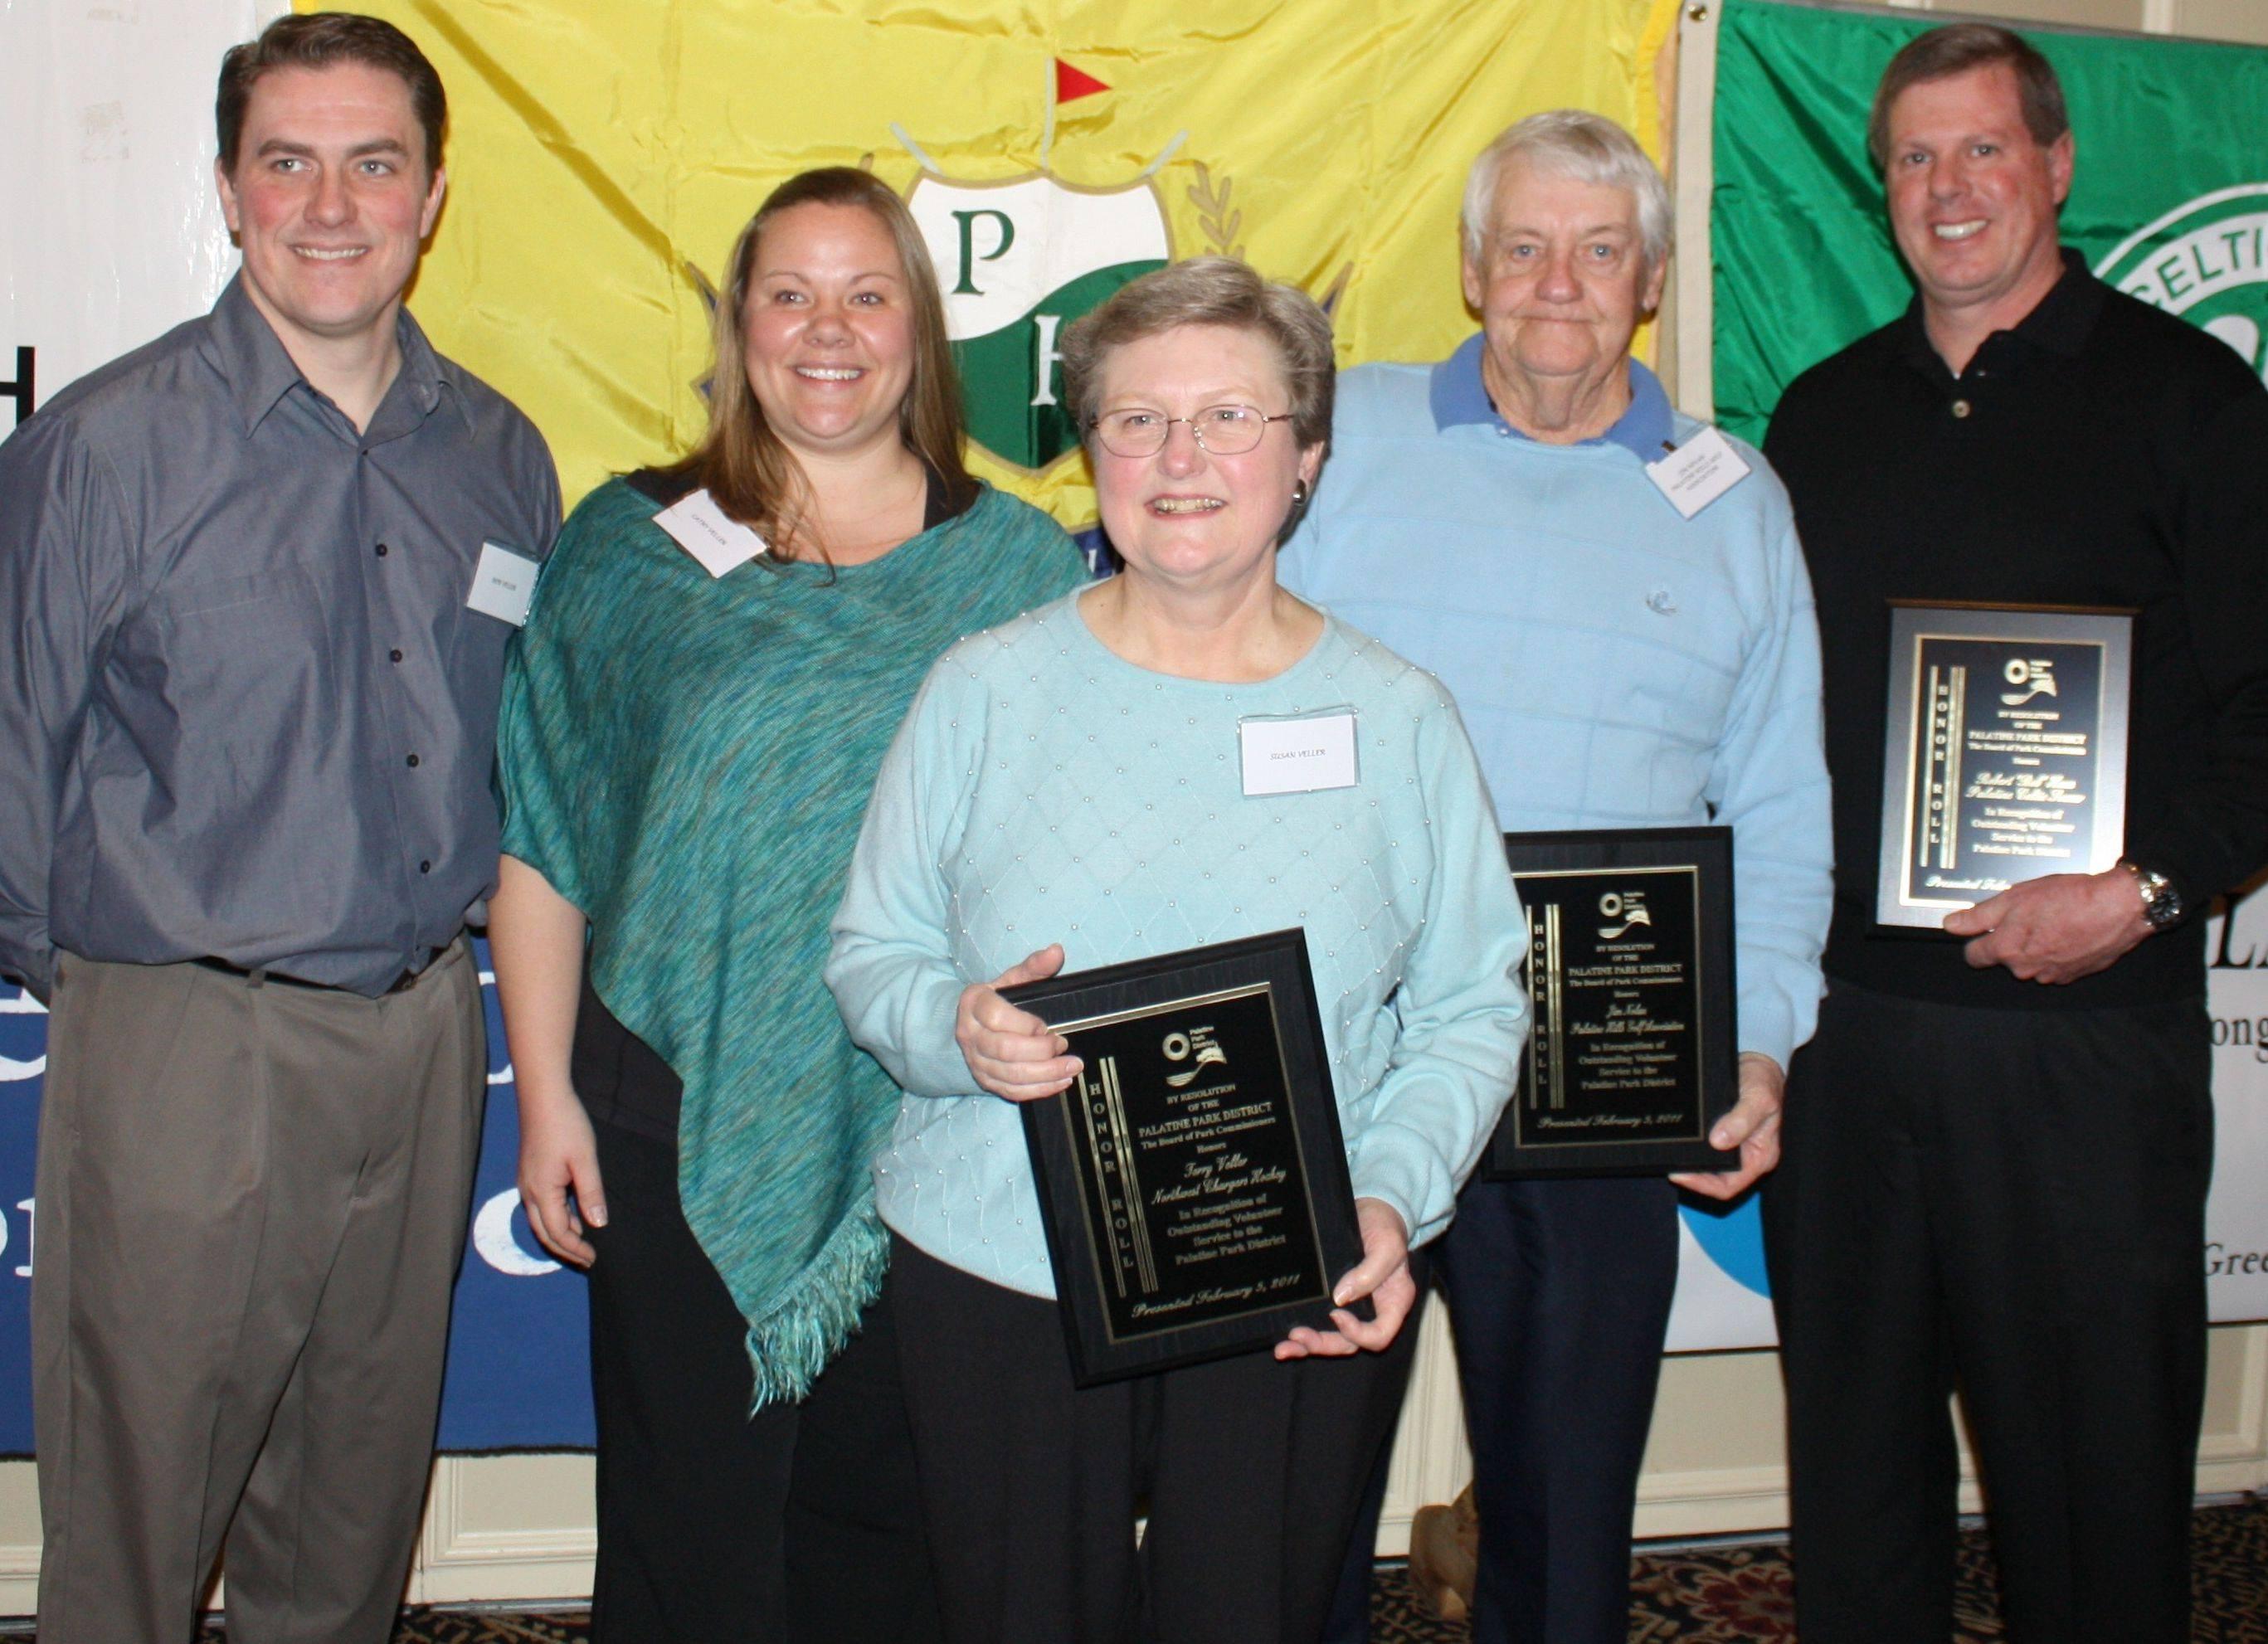 Honor Roll inductees, from left, the late Terry Veller's family, son Bob Veller; daughter Cathy Veller; and wife Susan Veller, who accepted the award on Terry's behalf; Jim Nolan and Bob Haas.